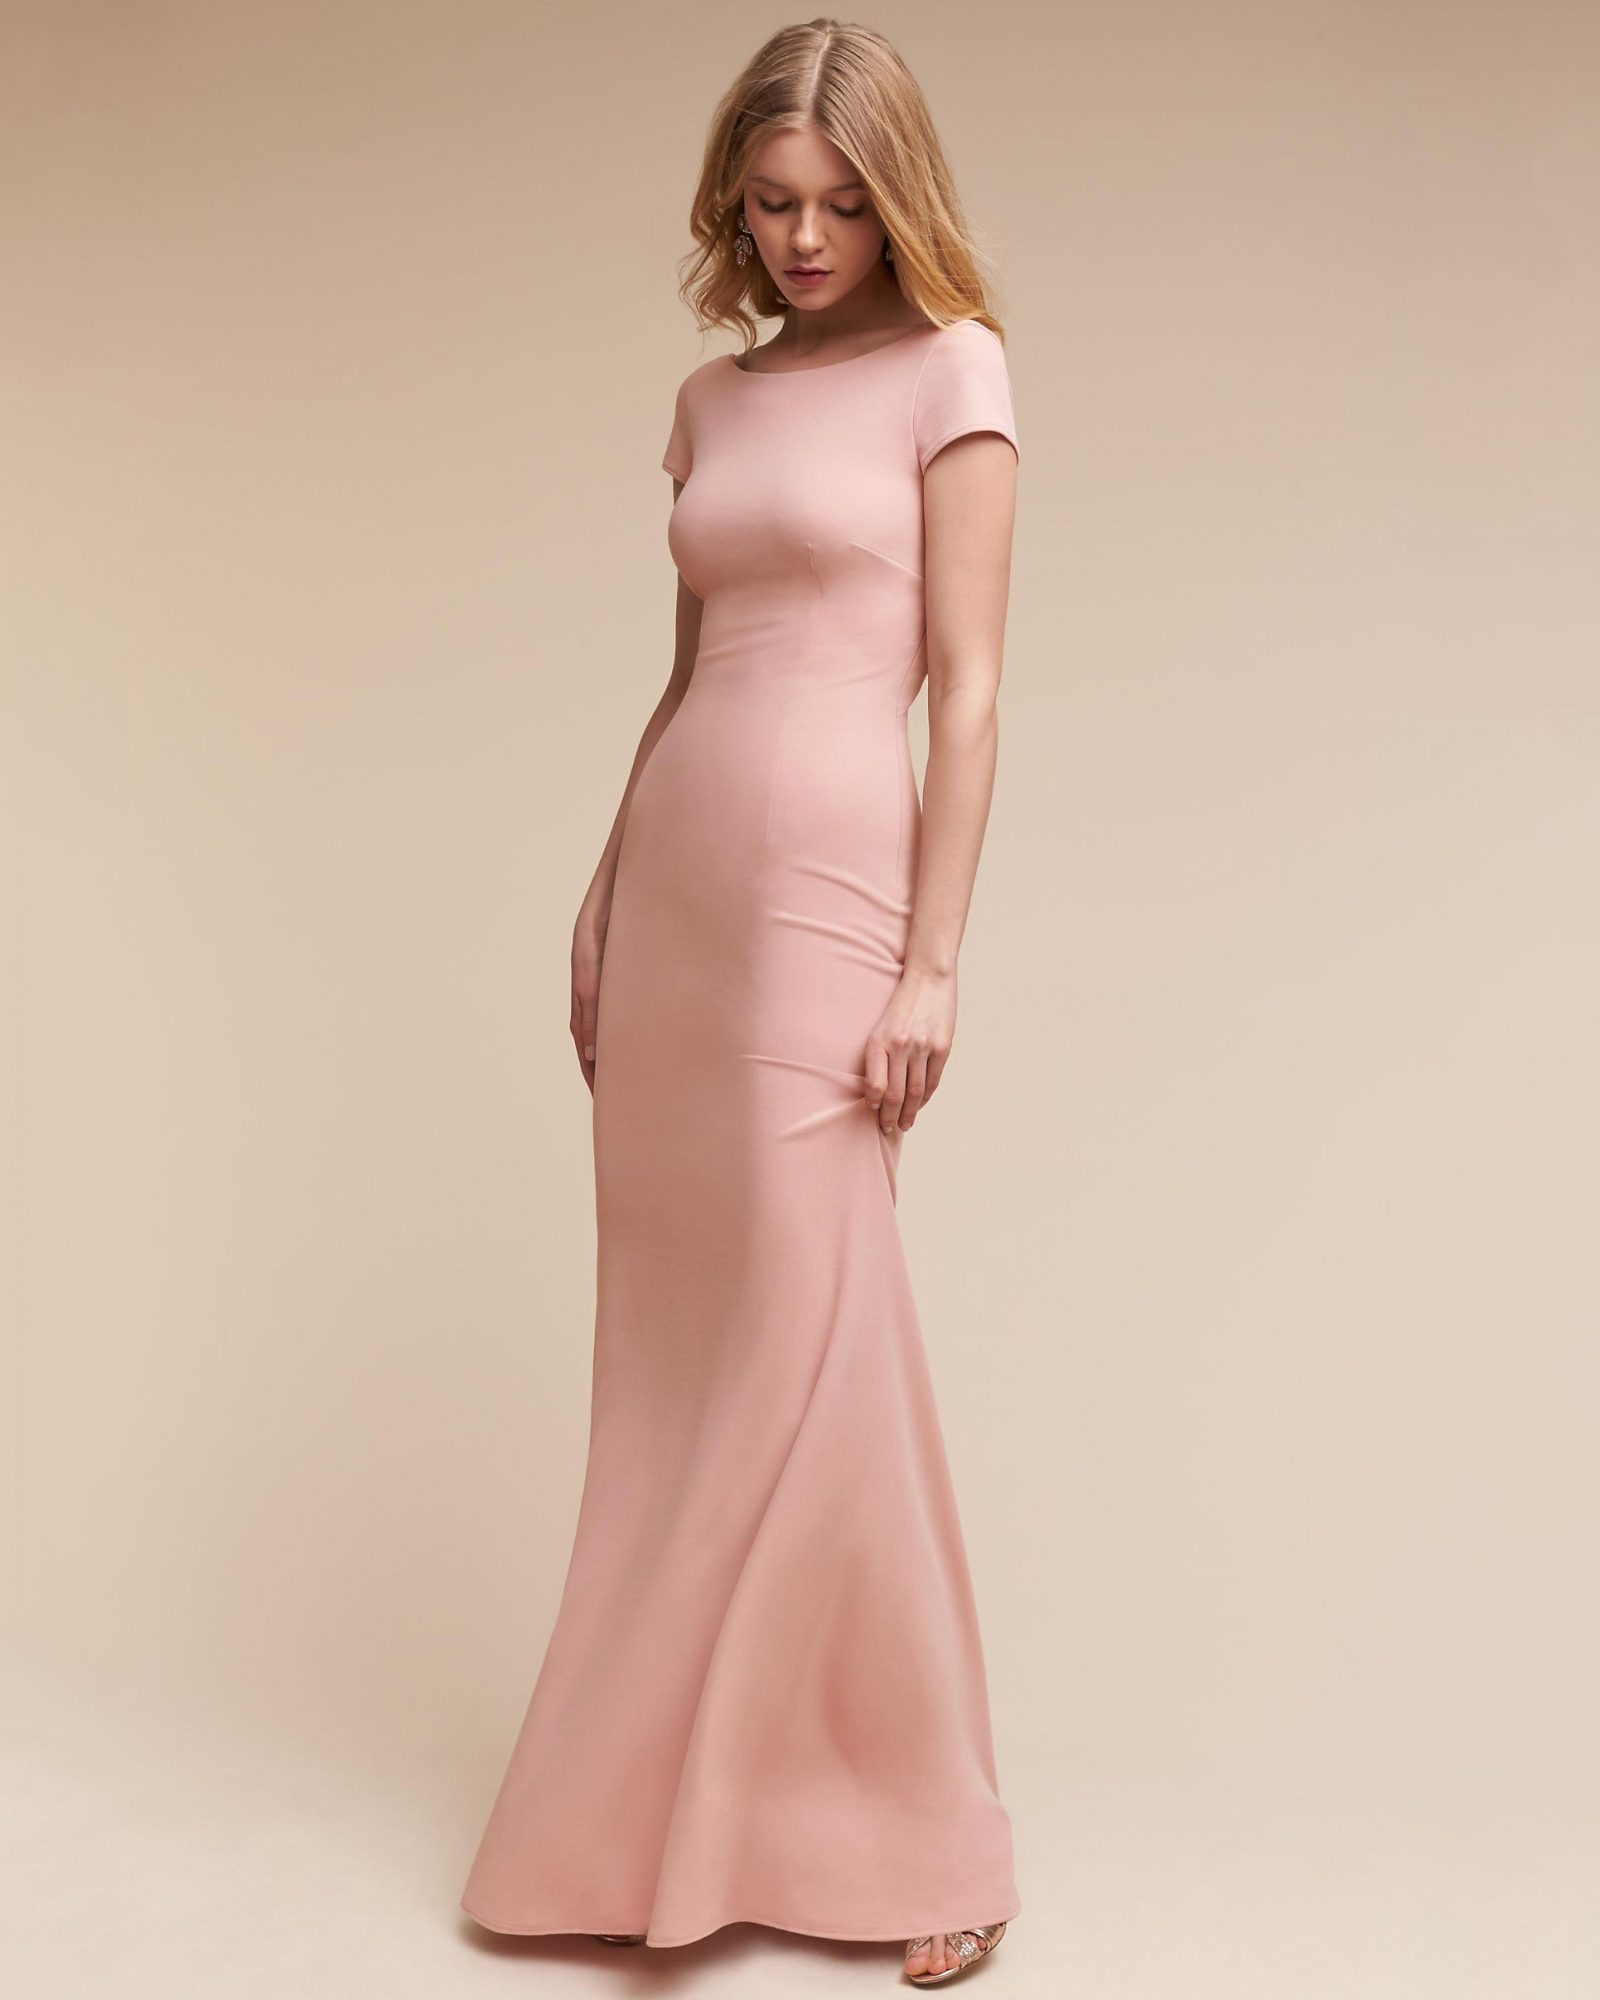 pink sheath bridesmaid dress short sleeve